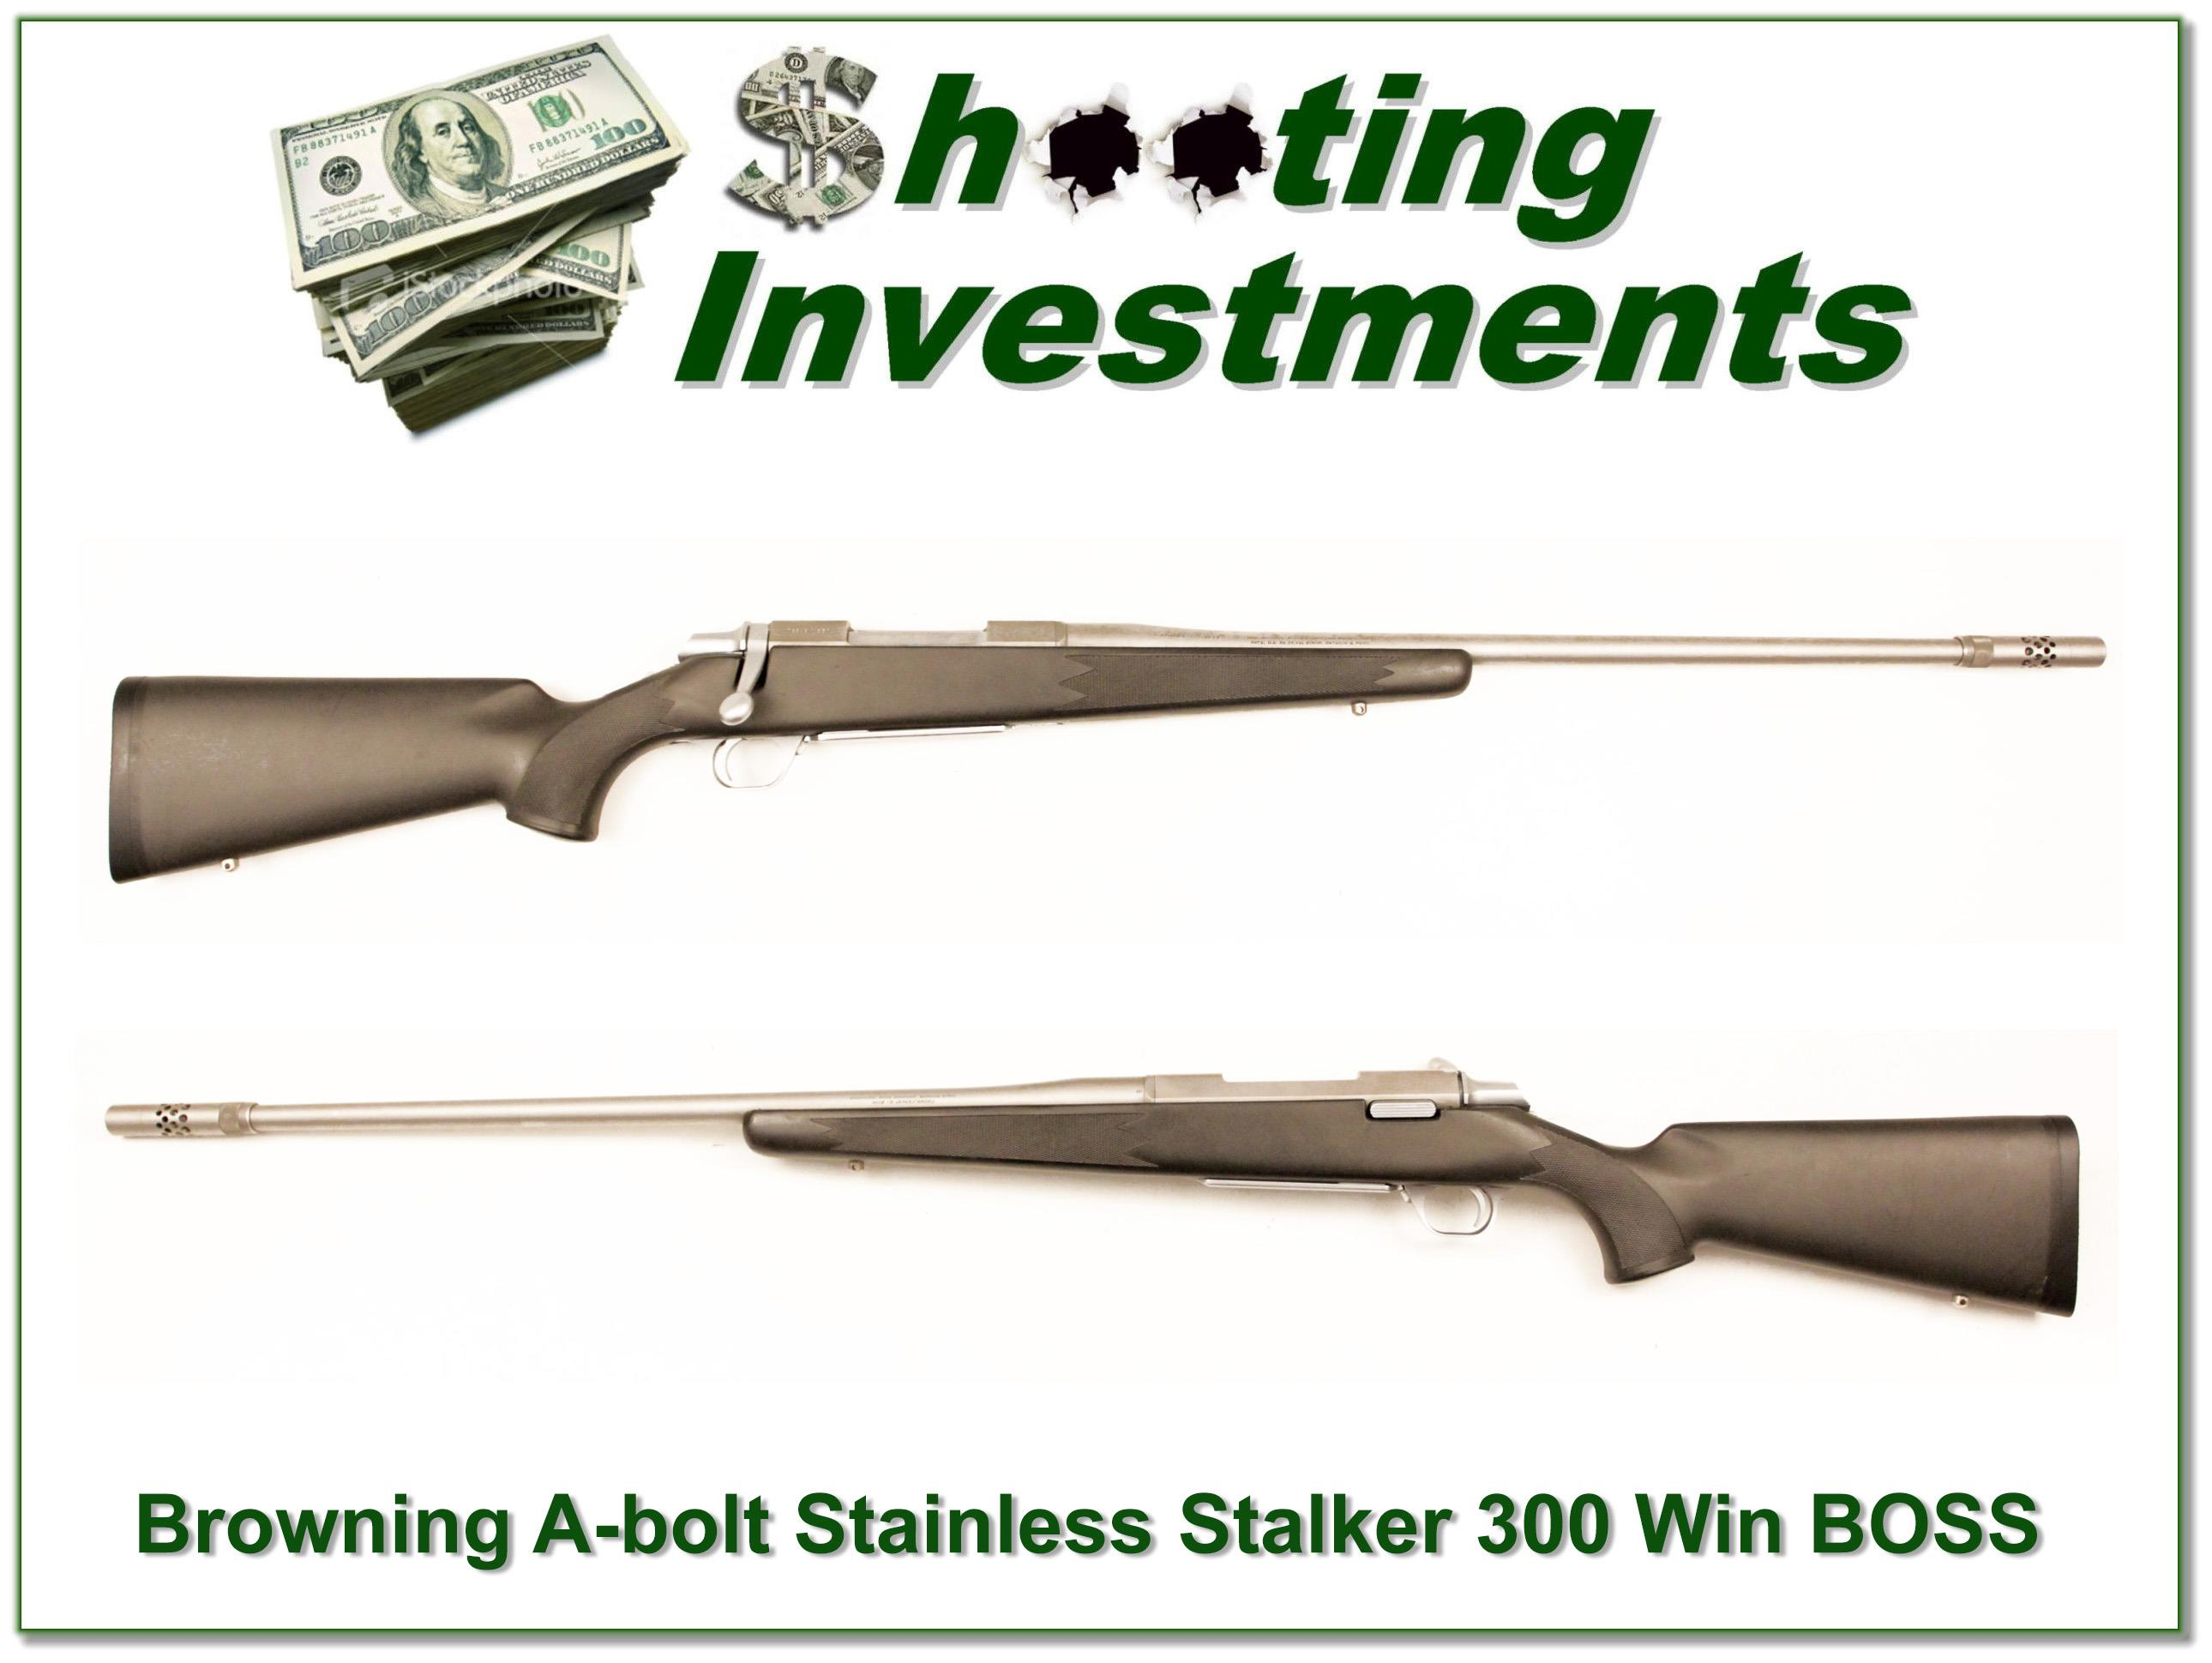 Browning A-bolt Stainless Stalker 300 WIN BOSS  Guns > Rifles > Browning Rifles > Bolt Action > Hunting > Stainless